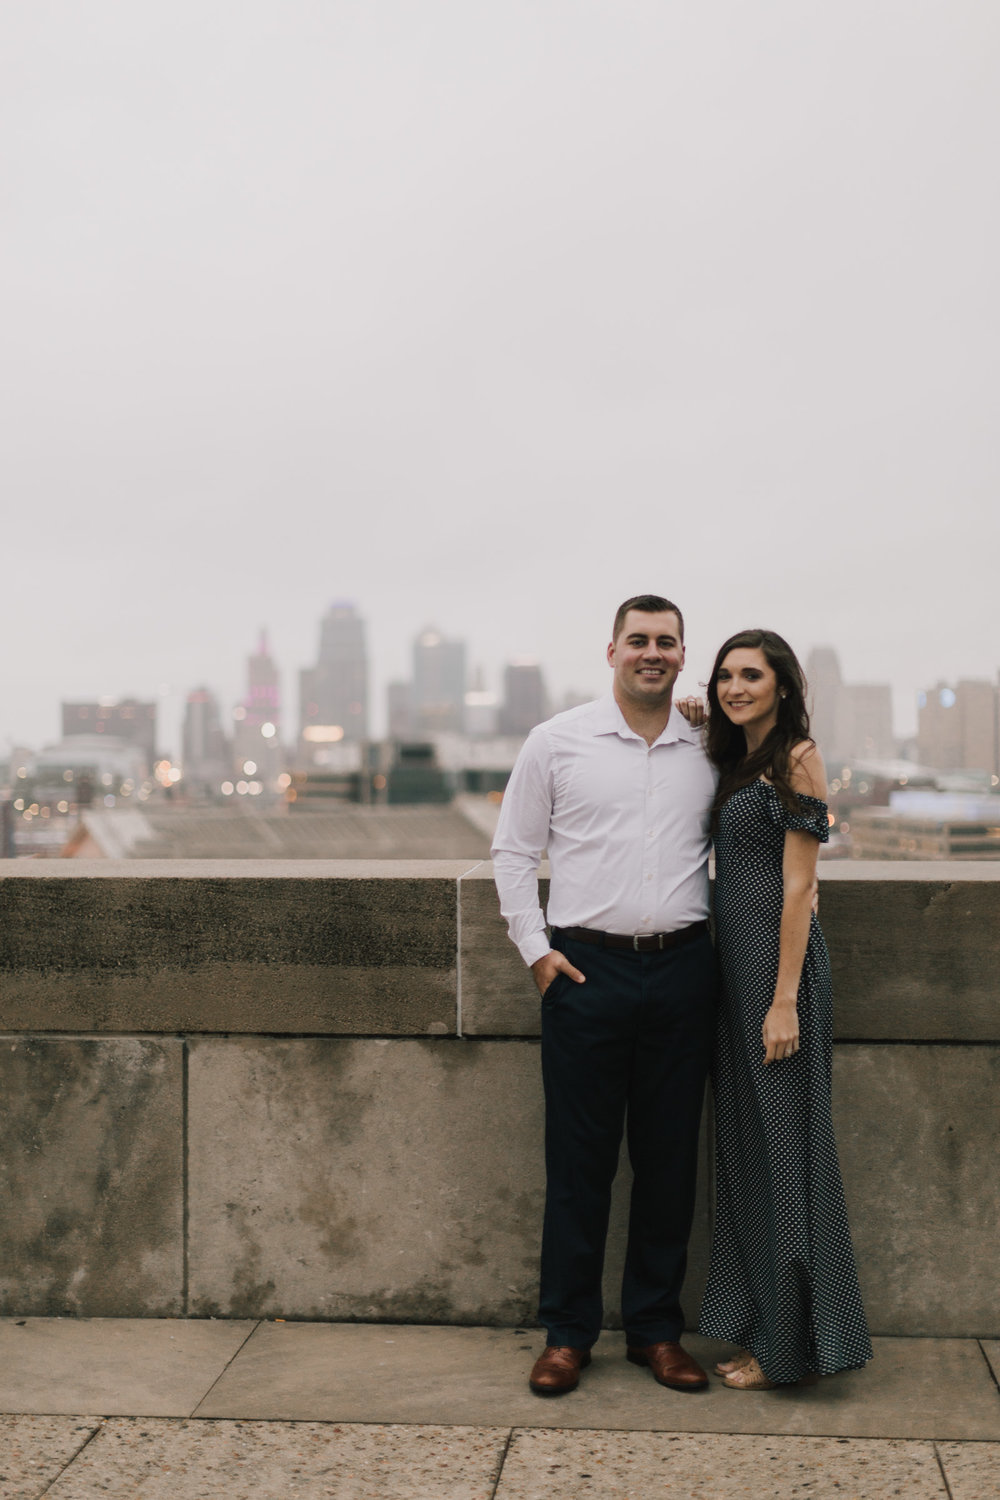 alyssa barletter photography emperial brewery engagement session downtown kansas city kc crossroads -22.jpg